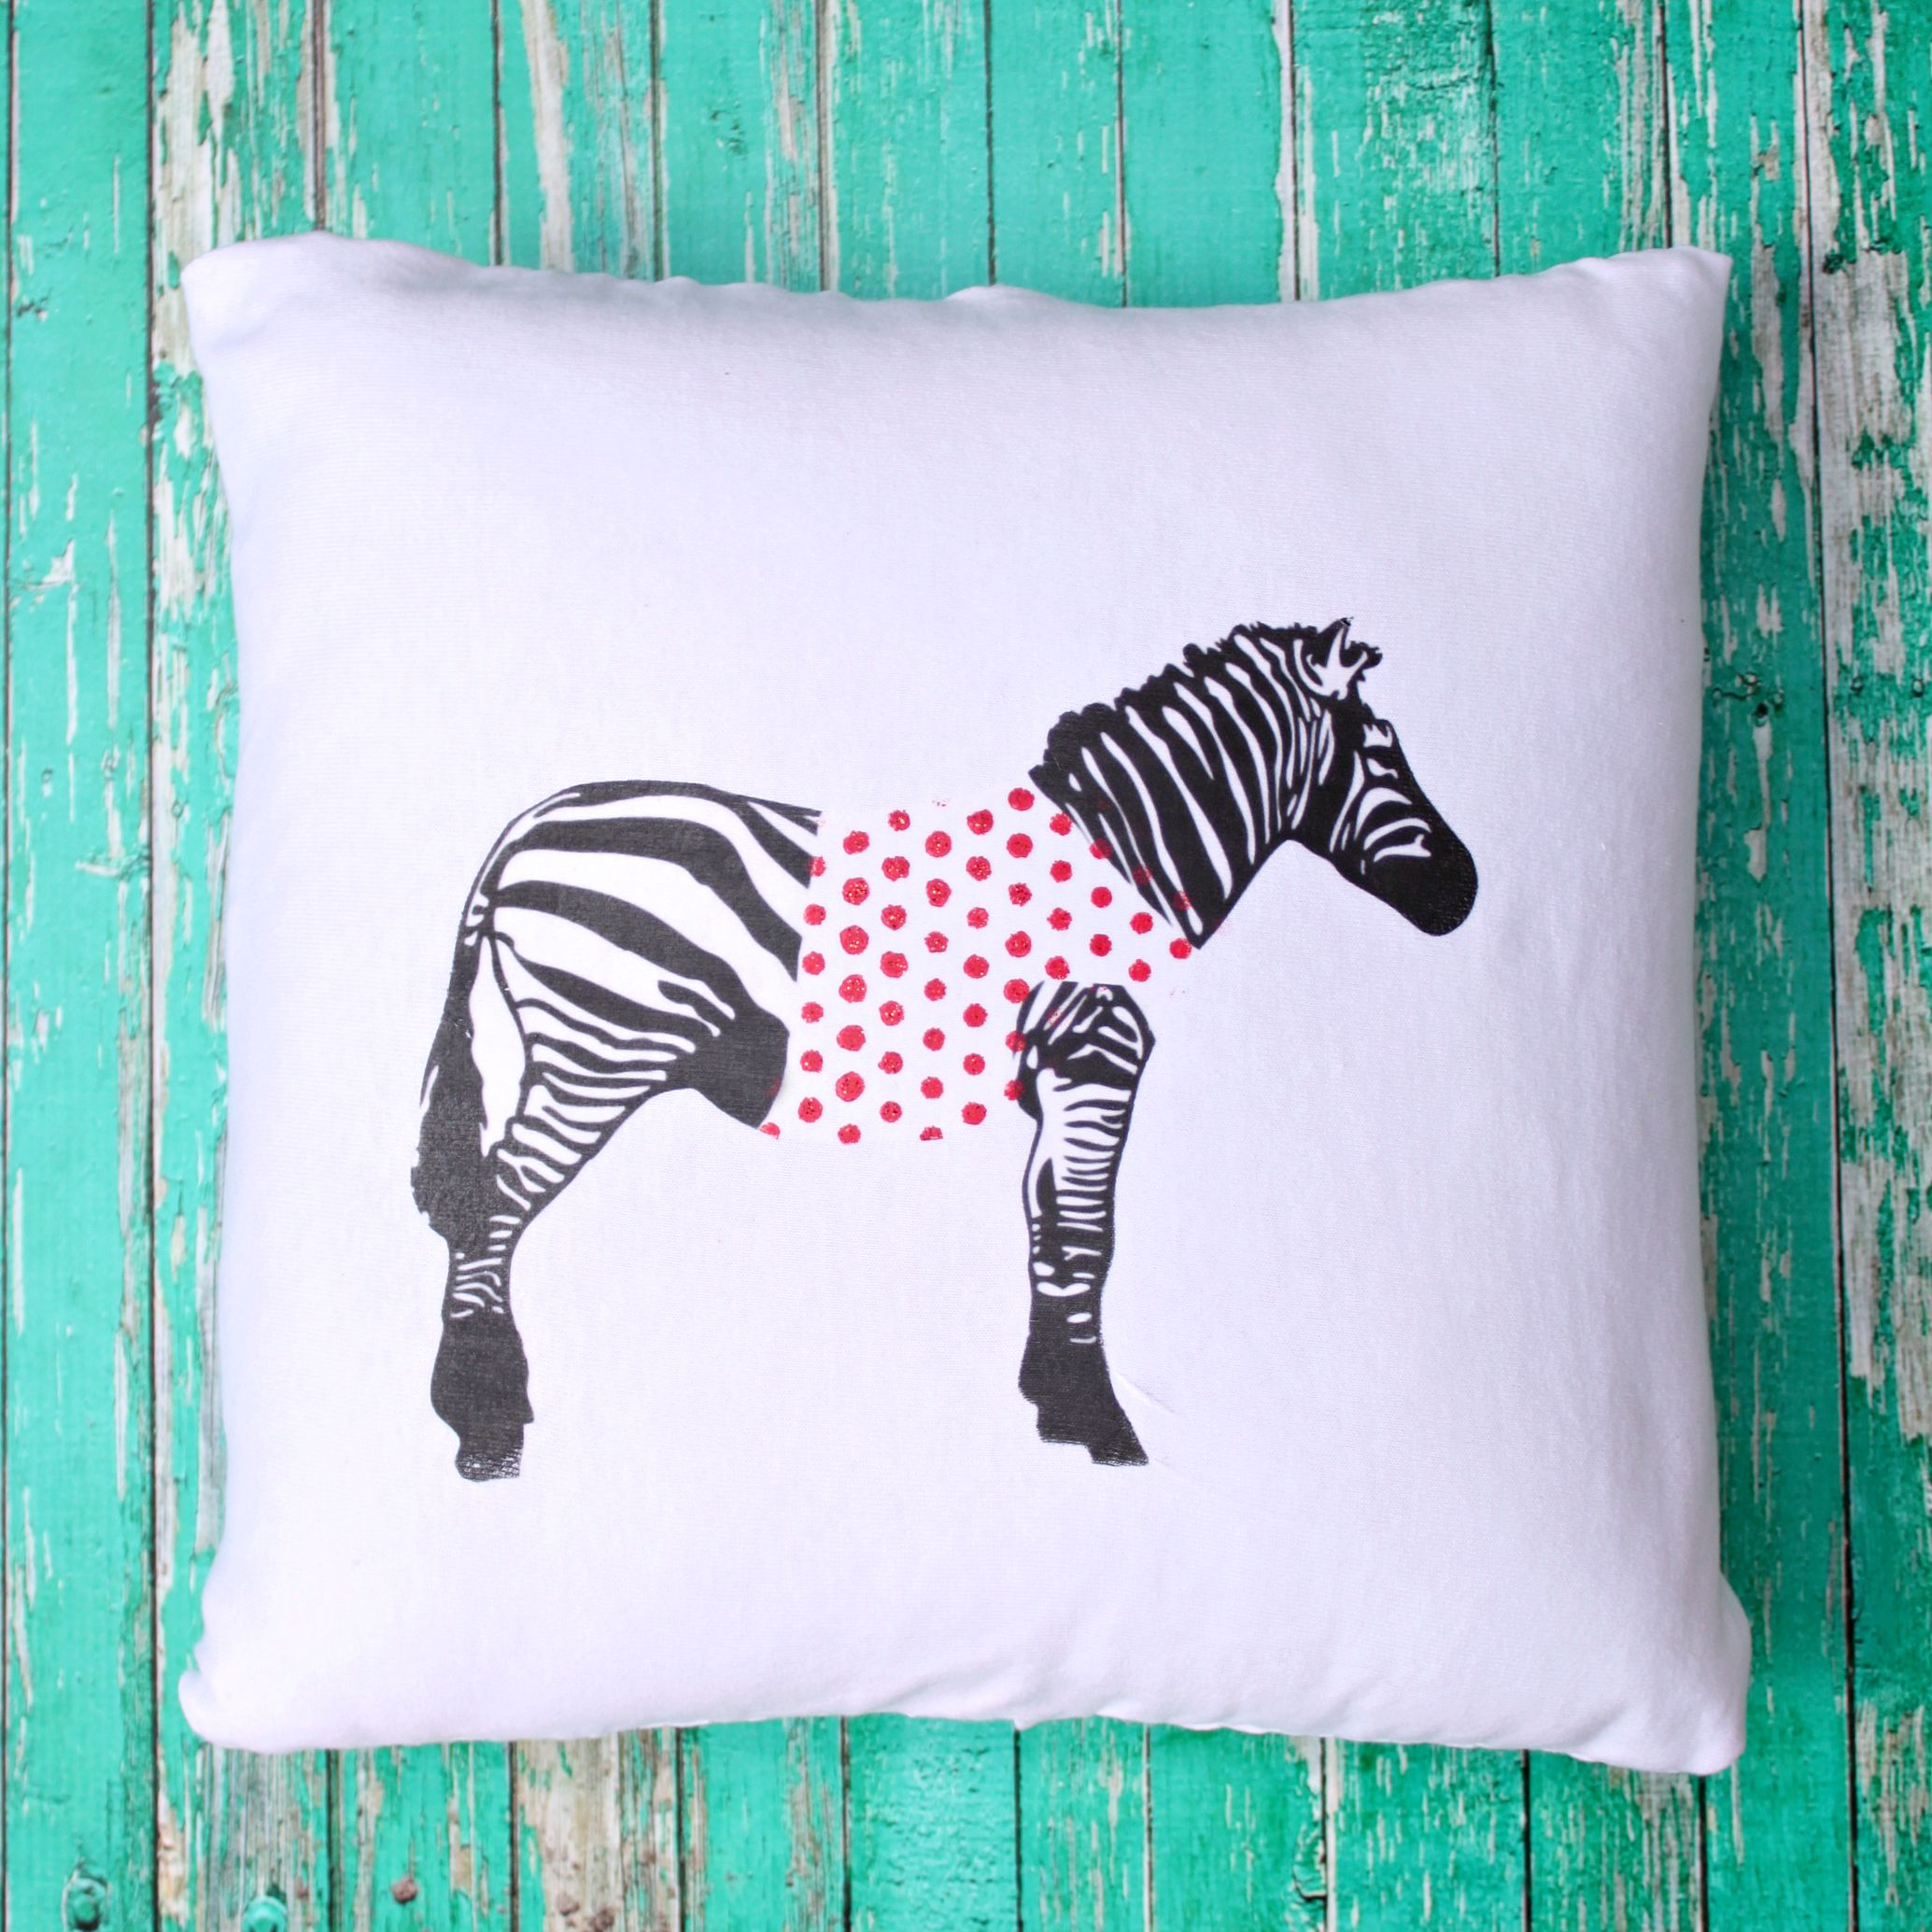 anthropologie knock off zebra pillow - fairfield world craft projects Unique Pillow Patterns